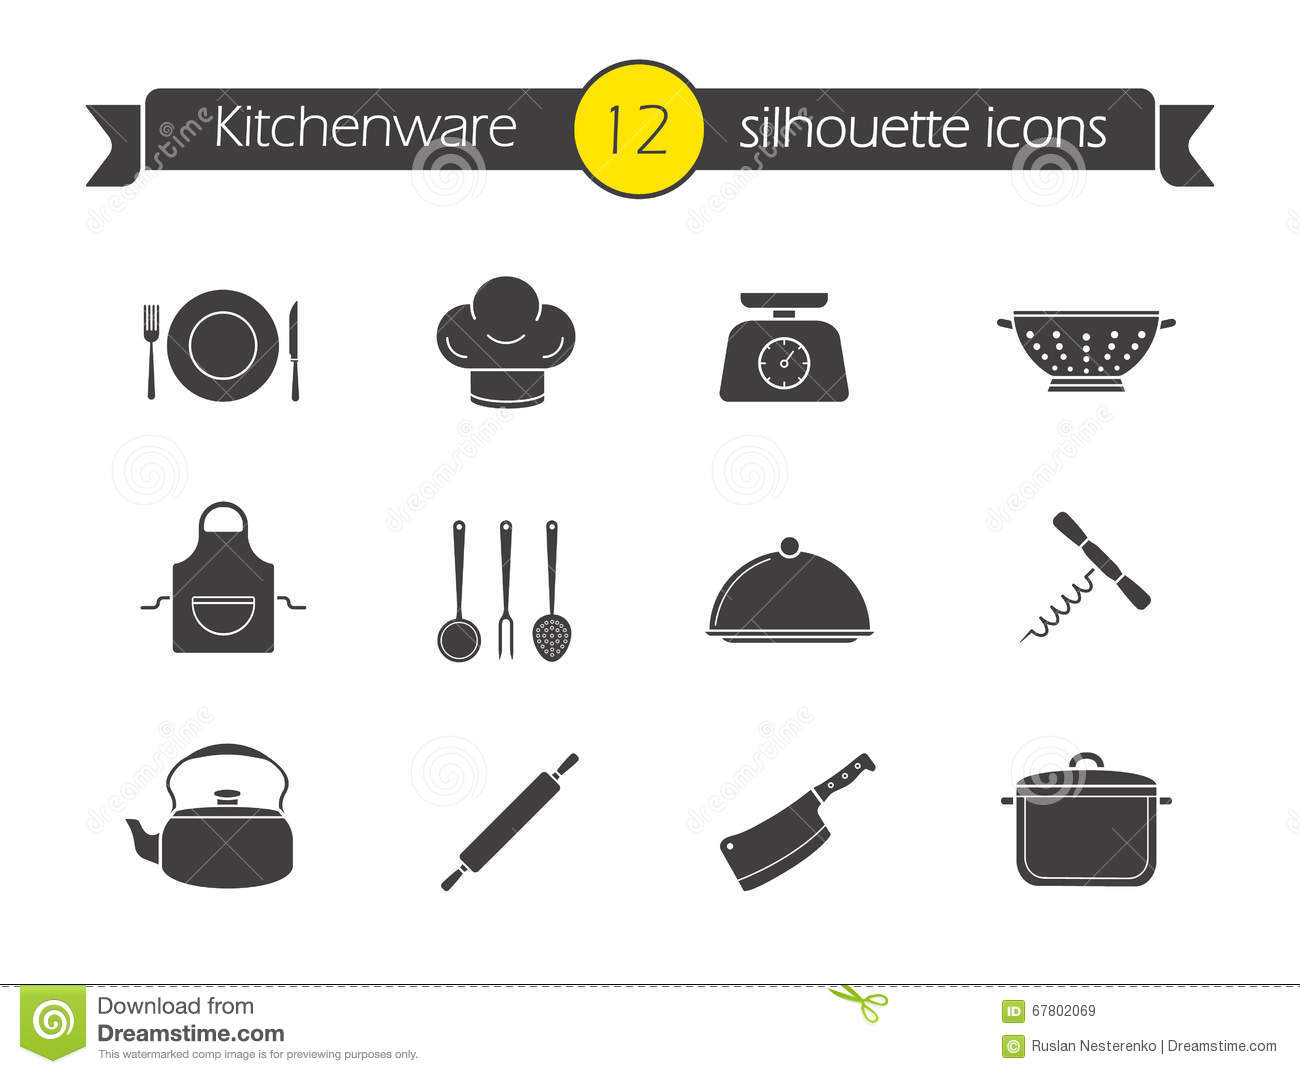 Kitchen Tools Silhouette Icons Set Stock Vector - Illustration of